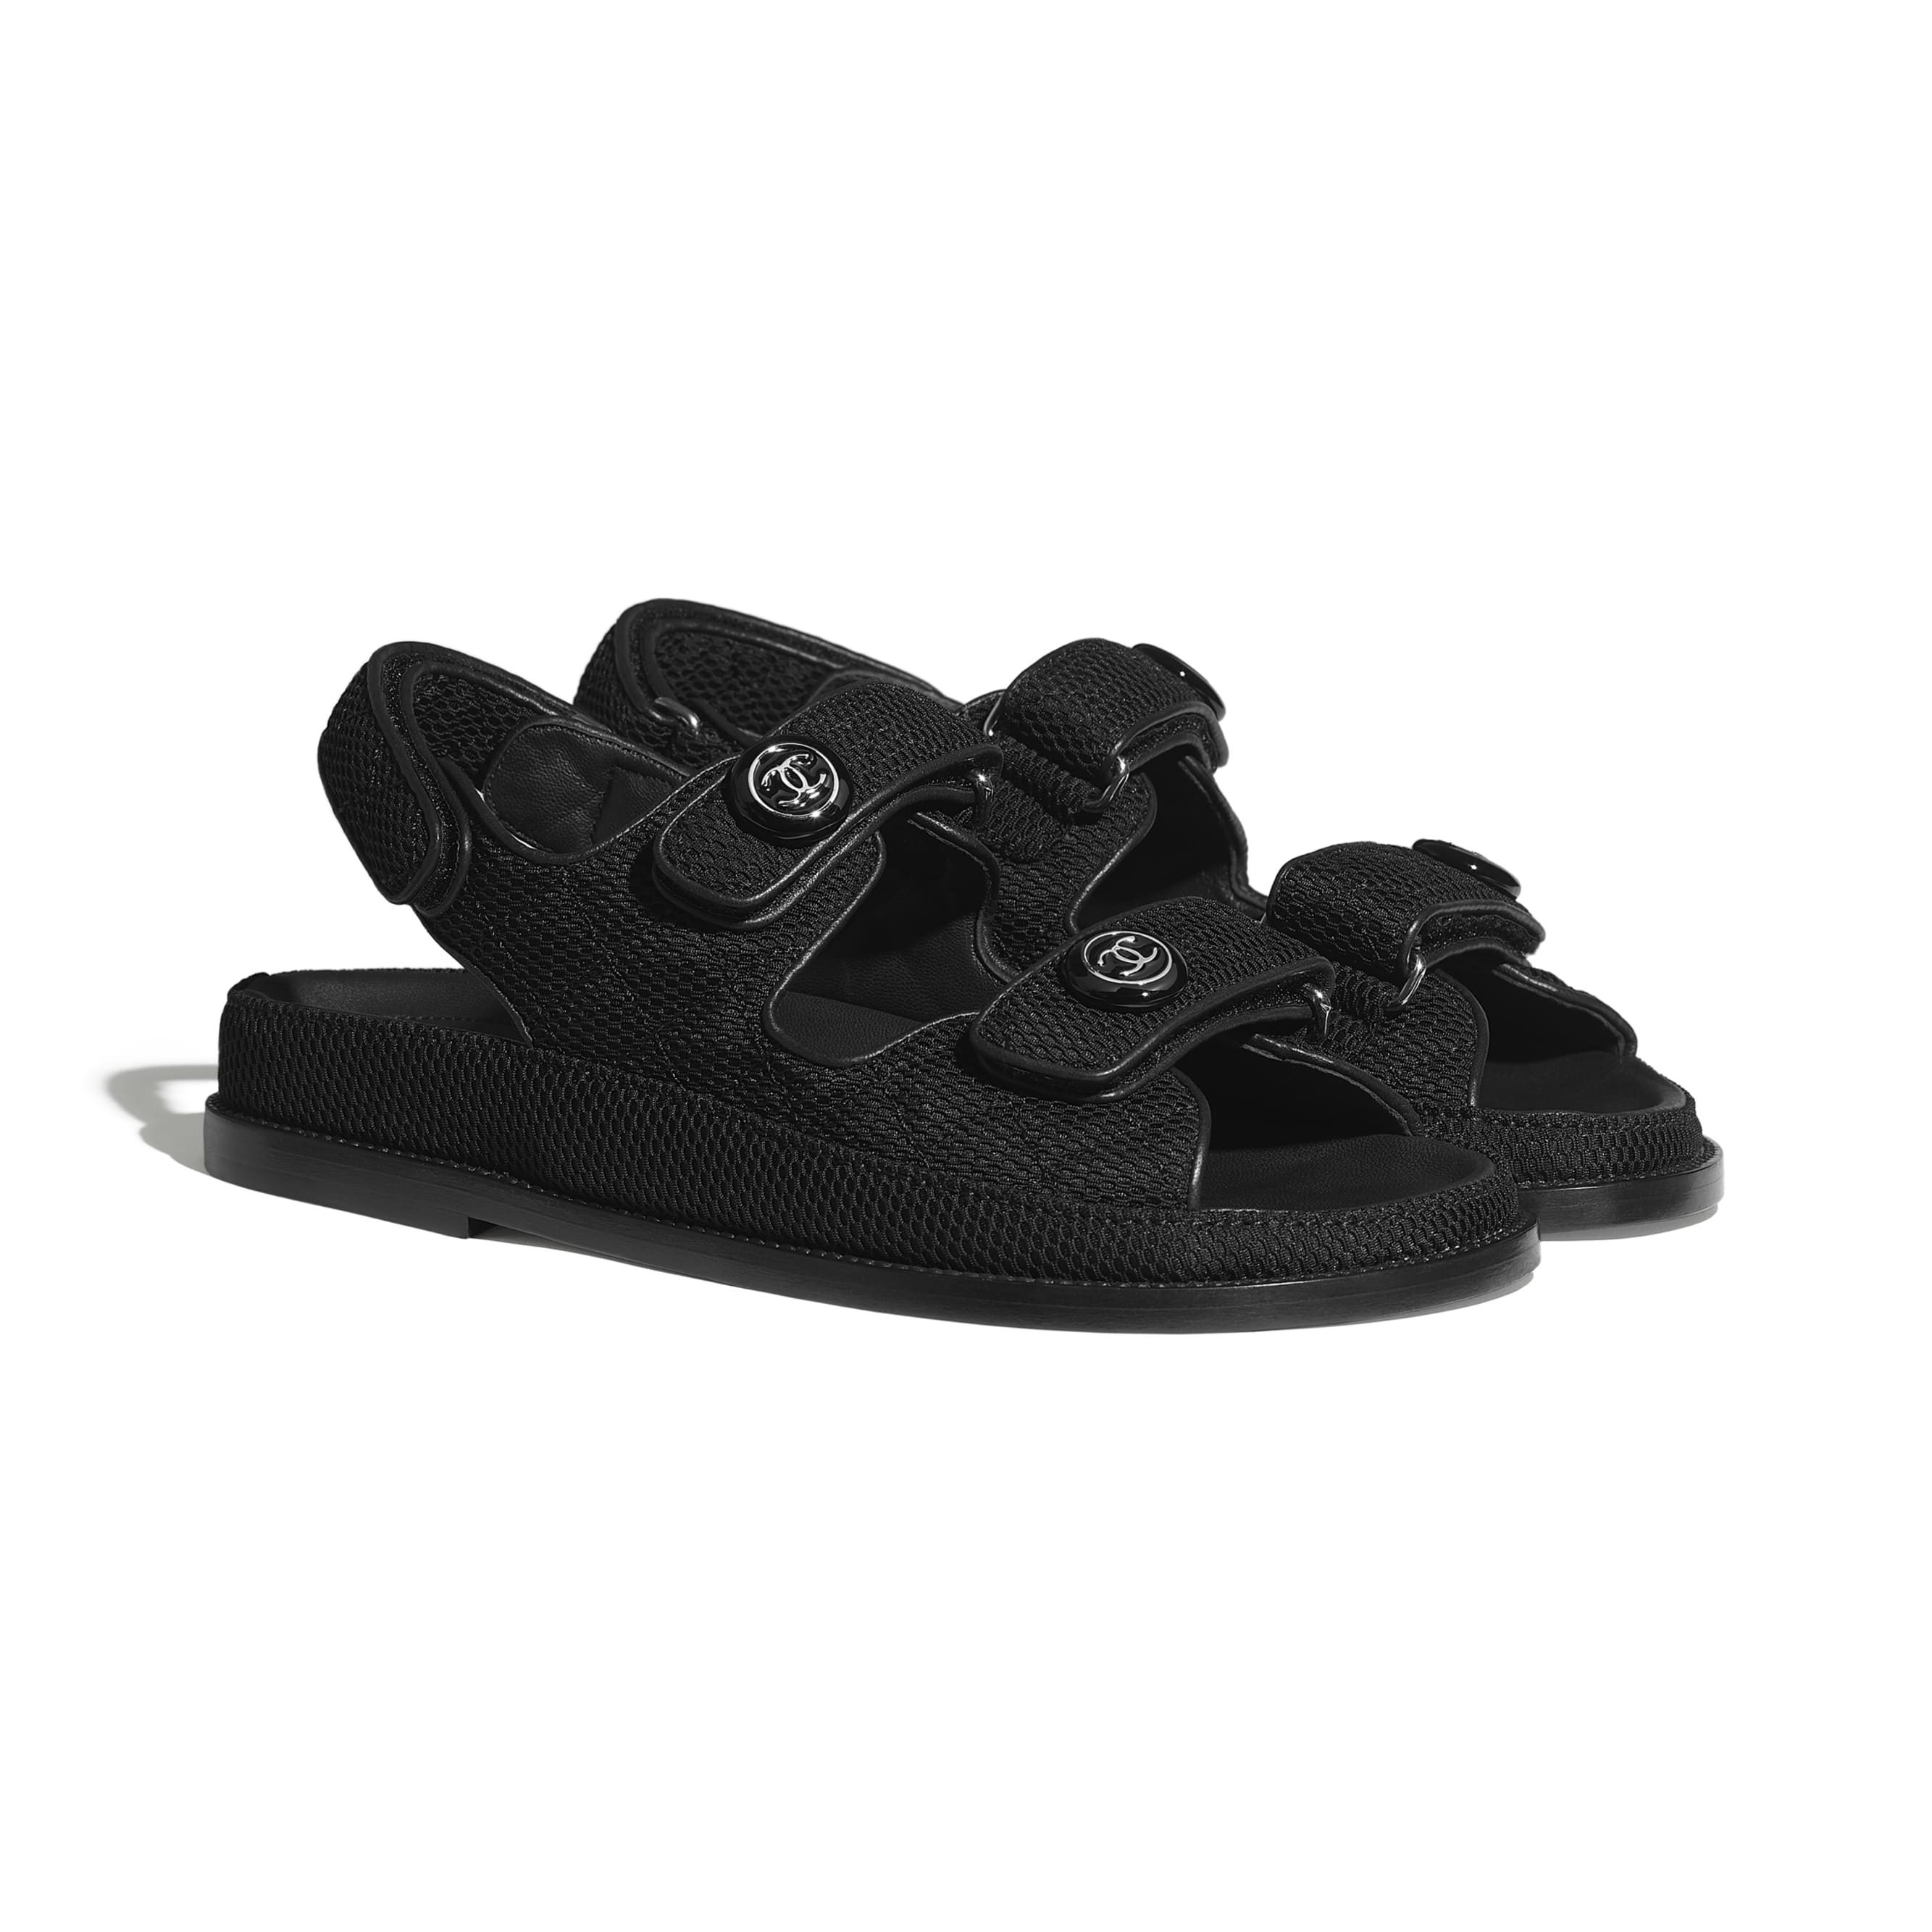 Sandals - Black - Fabric - CHANEL - Alternative view - see standard sized version